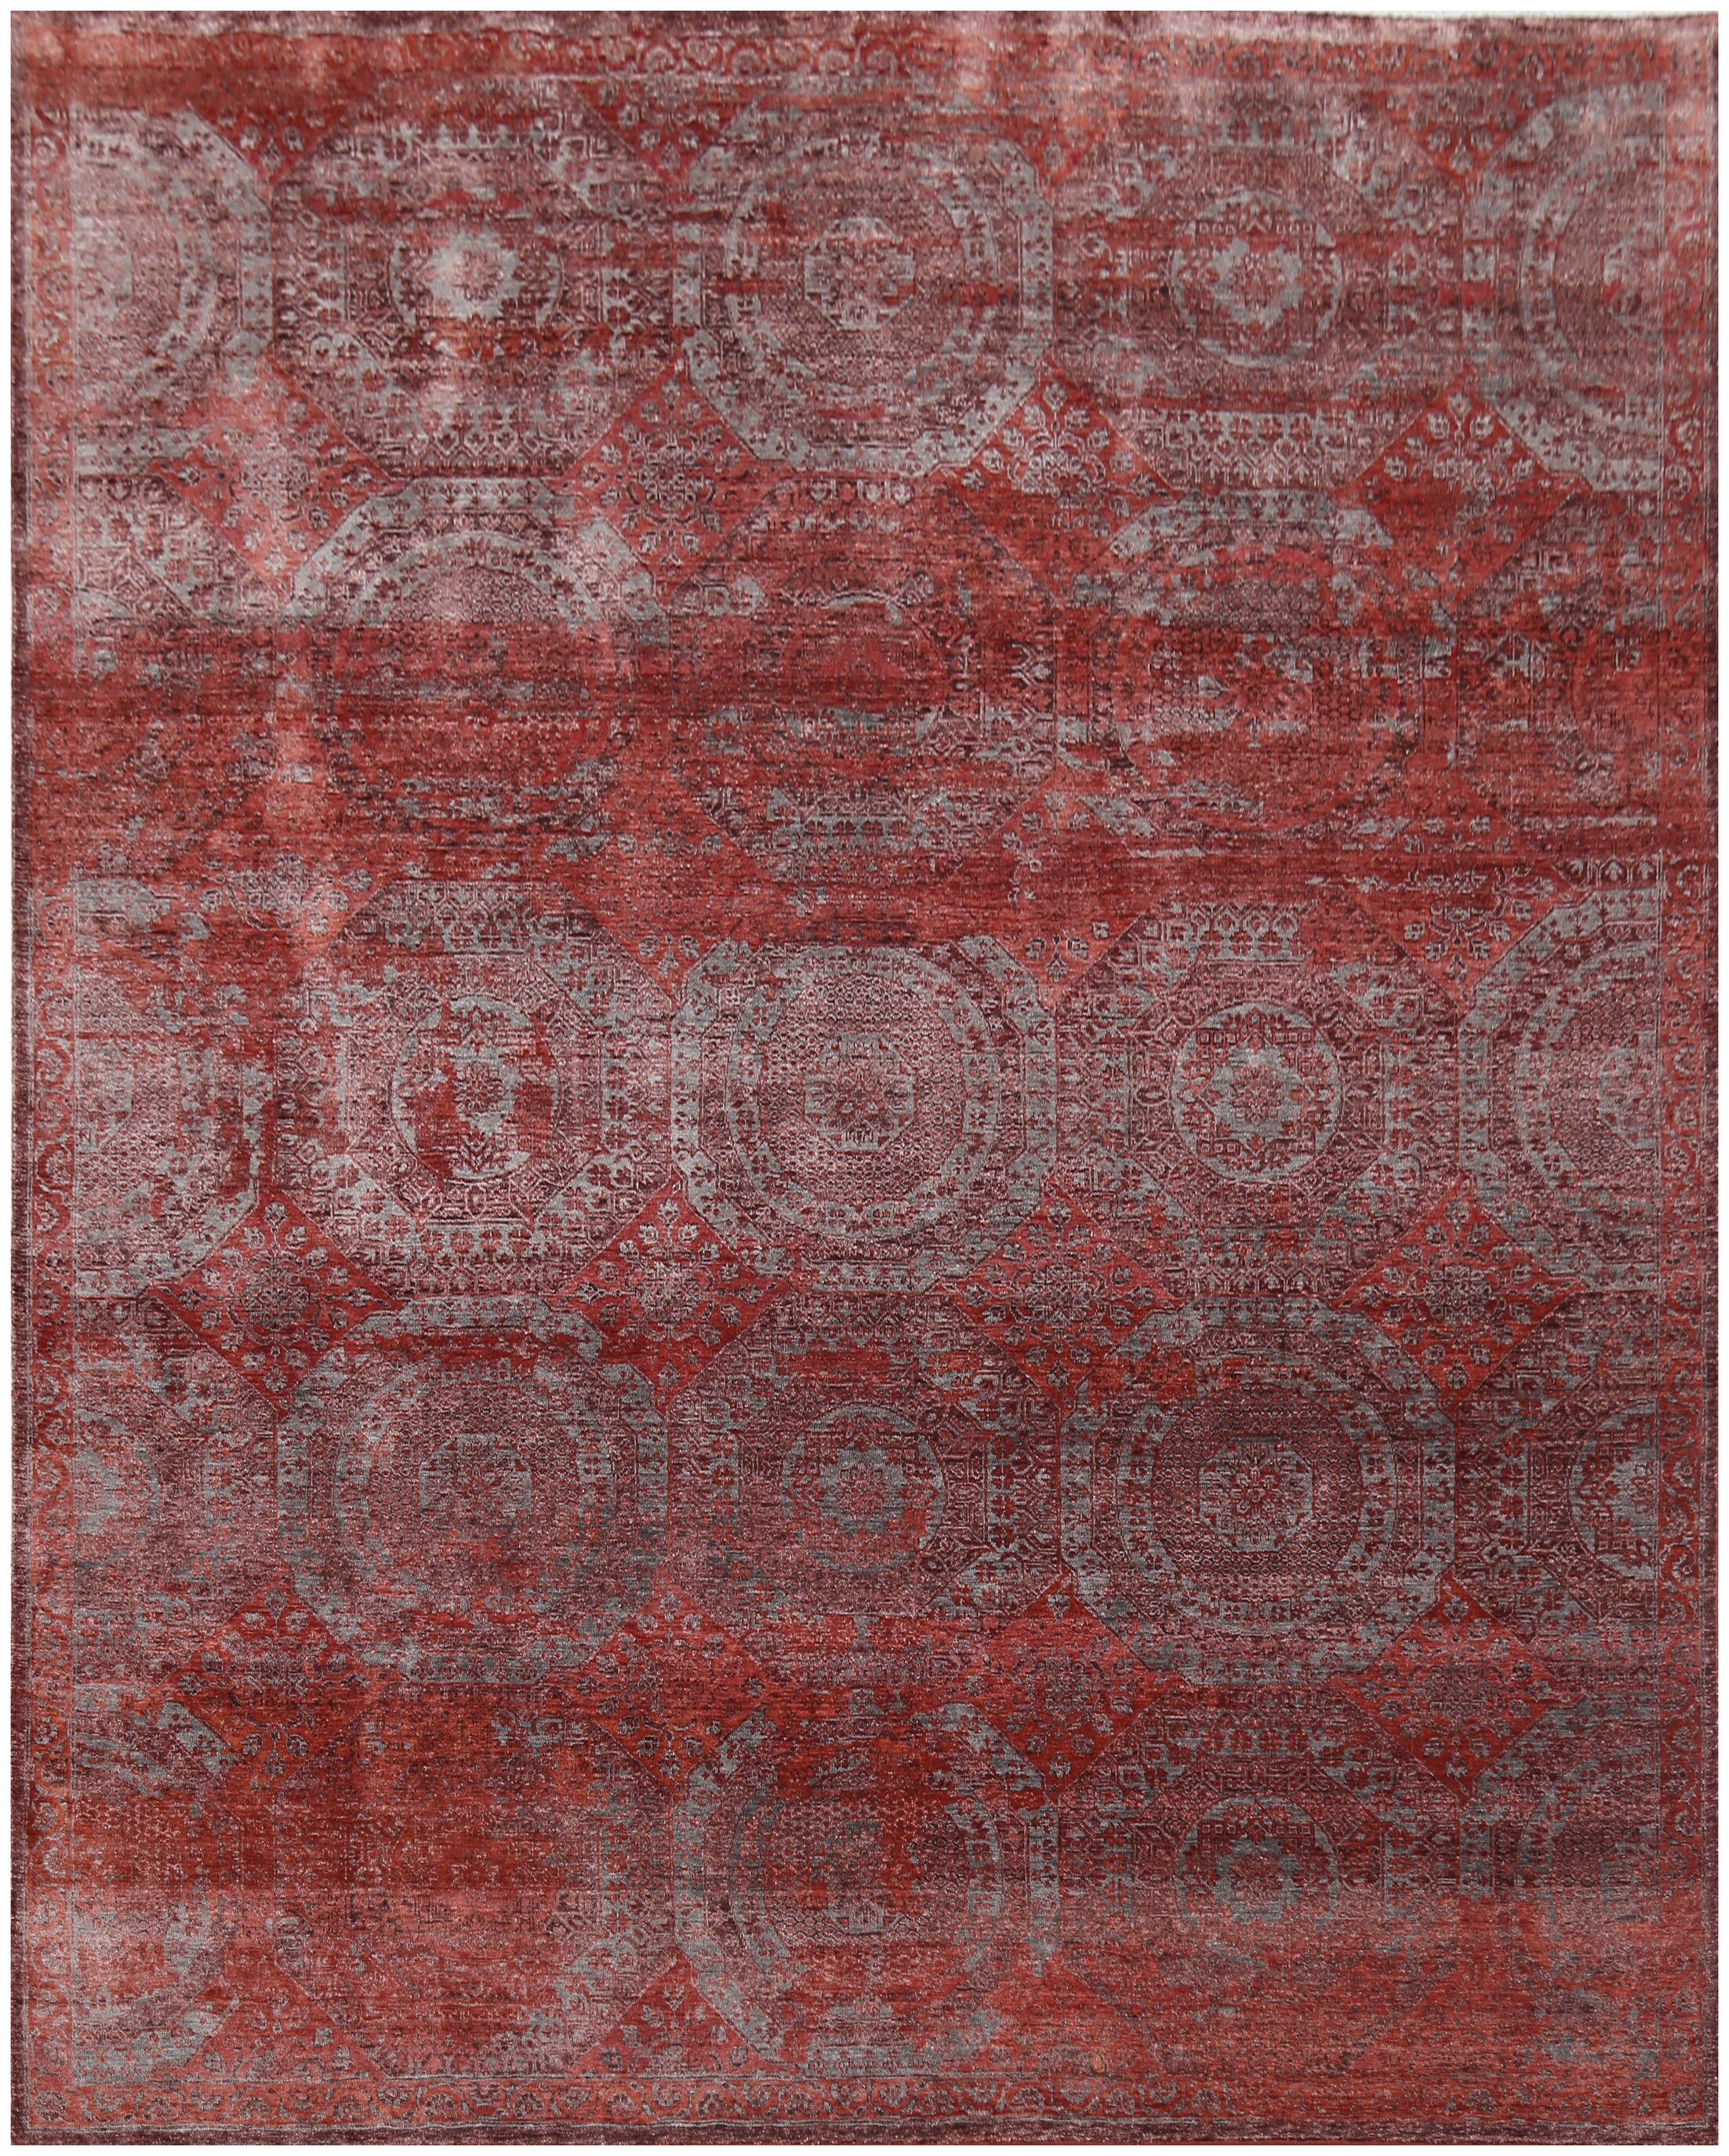 Fine Mamluk Hand-Knotted Silk Red Area Rug Rug Size: Rectangle 10' x 14'